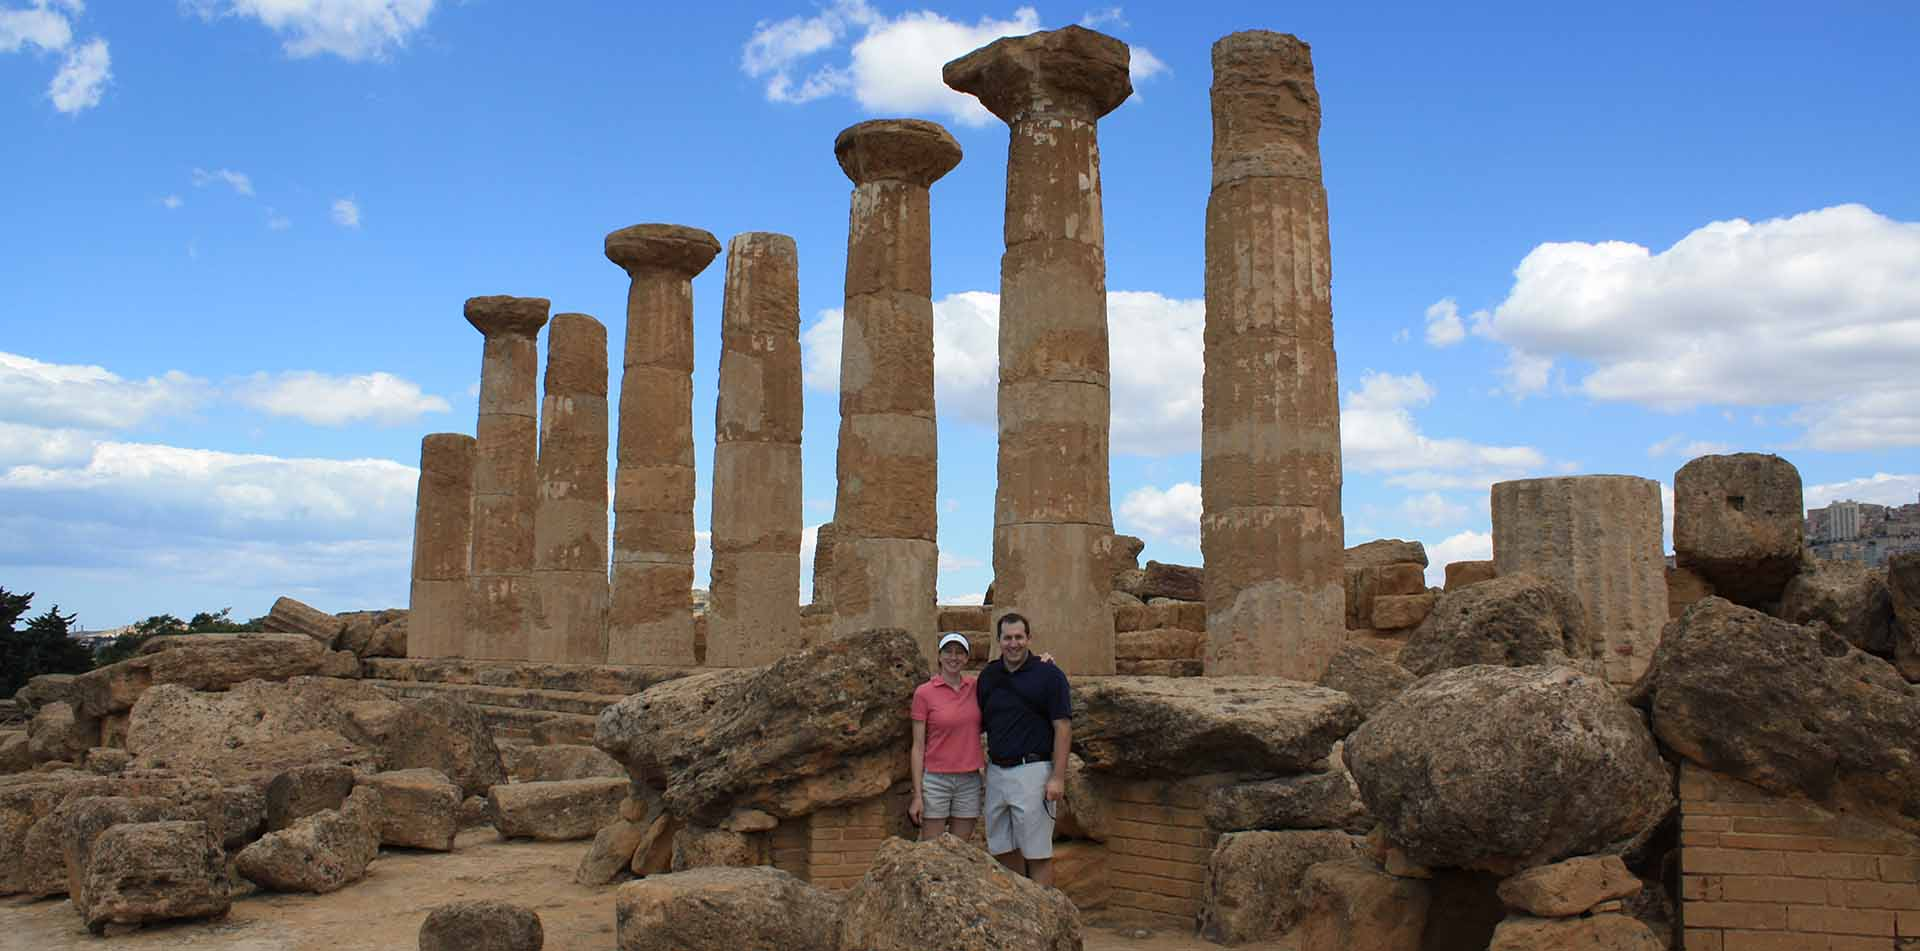 Europe Italy Sicily Agrigento Valley of the Temples couple standing in front of Greek columns - luxury vacation destinations